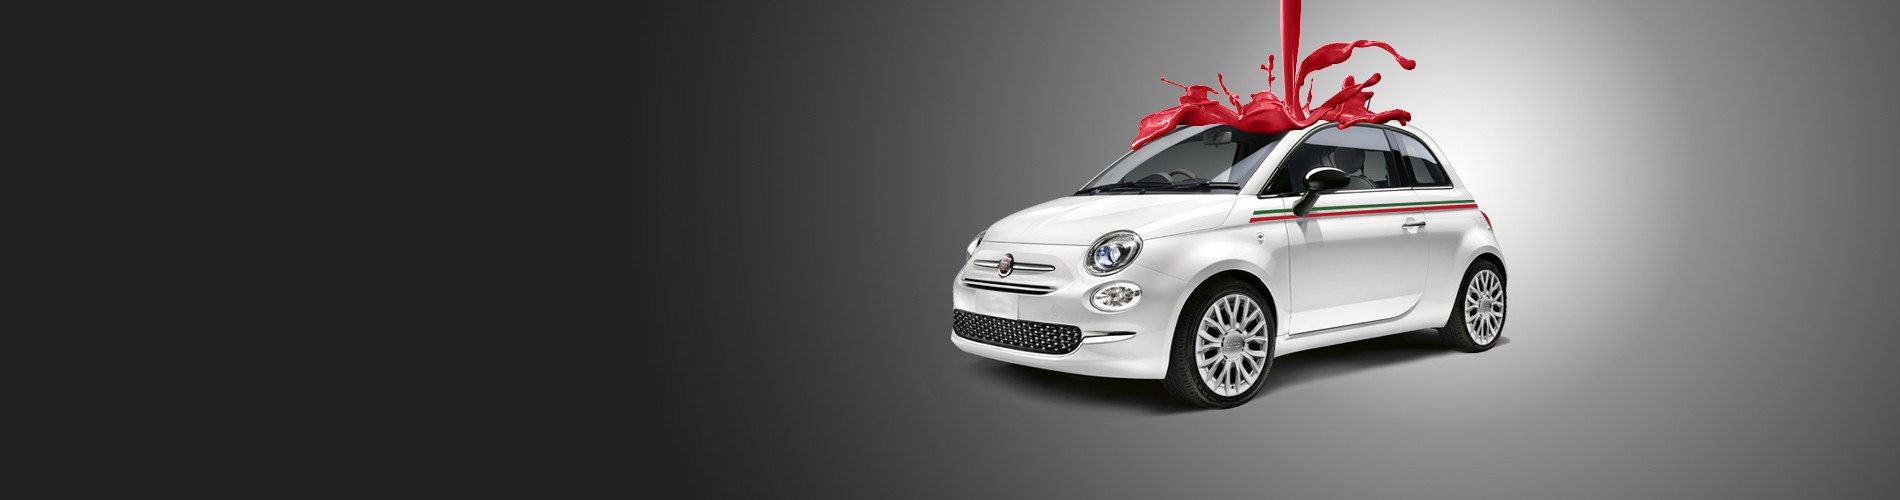 Ma Belle Voiture - Fiat 500 stickers